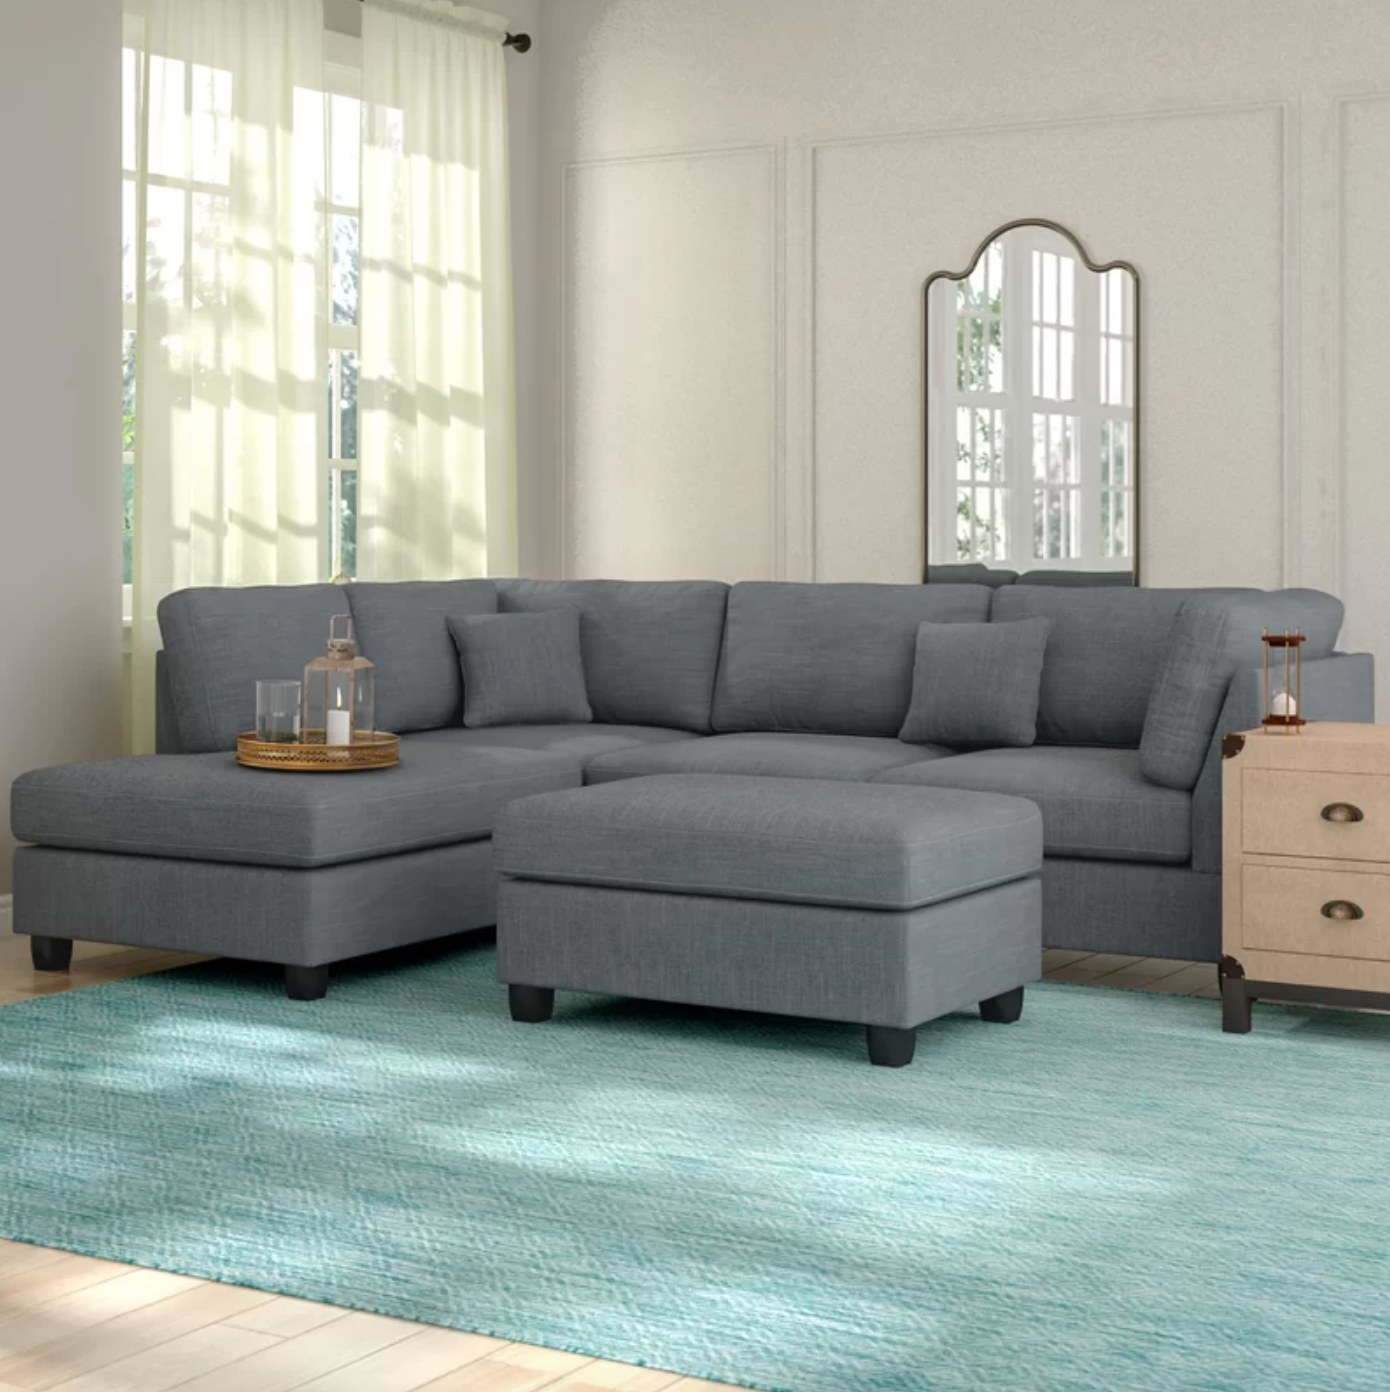 The reversible sectional with an ottoman in gray